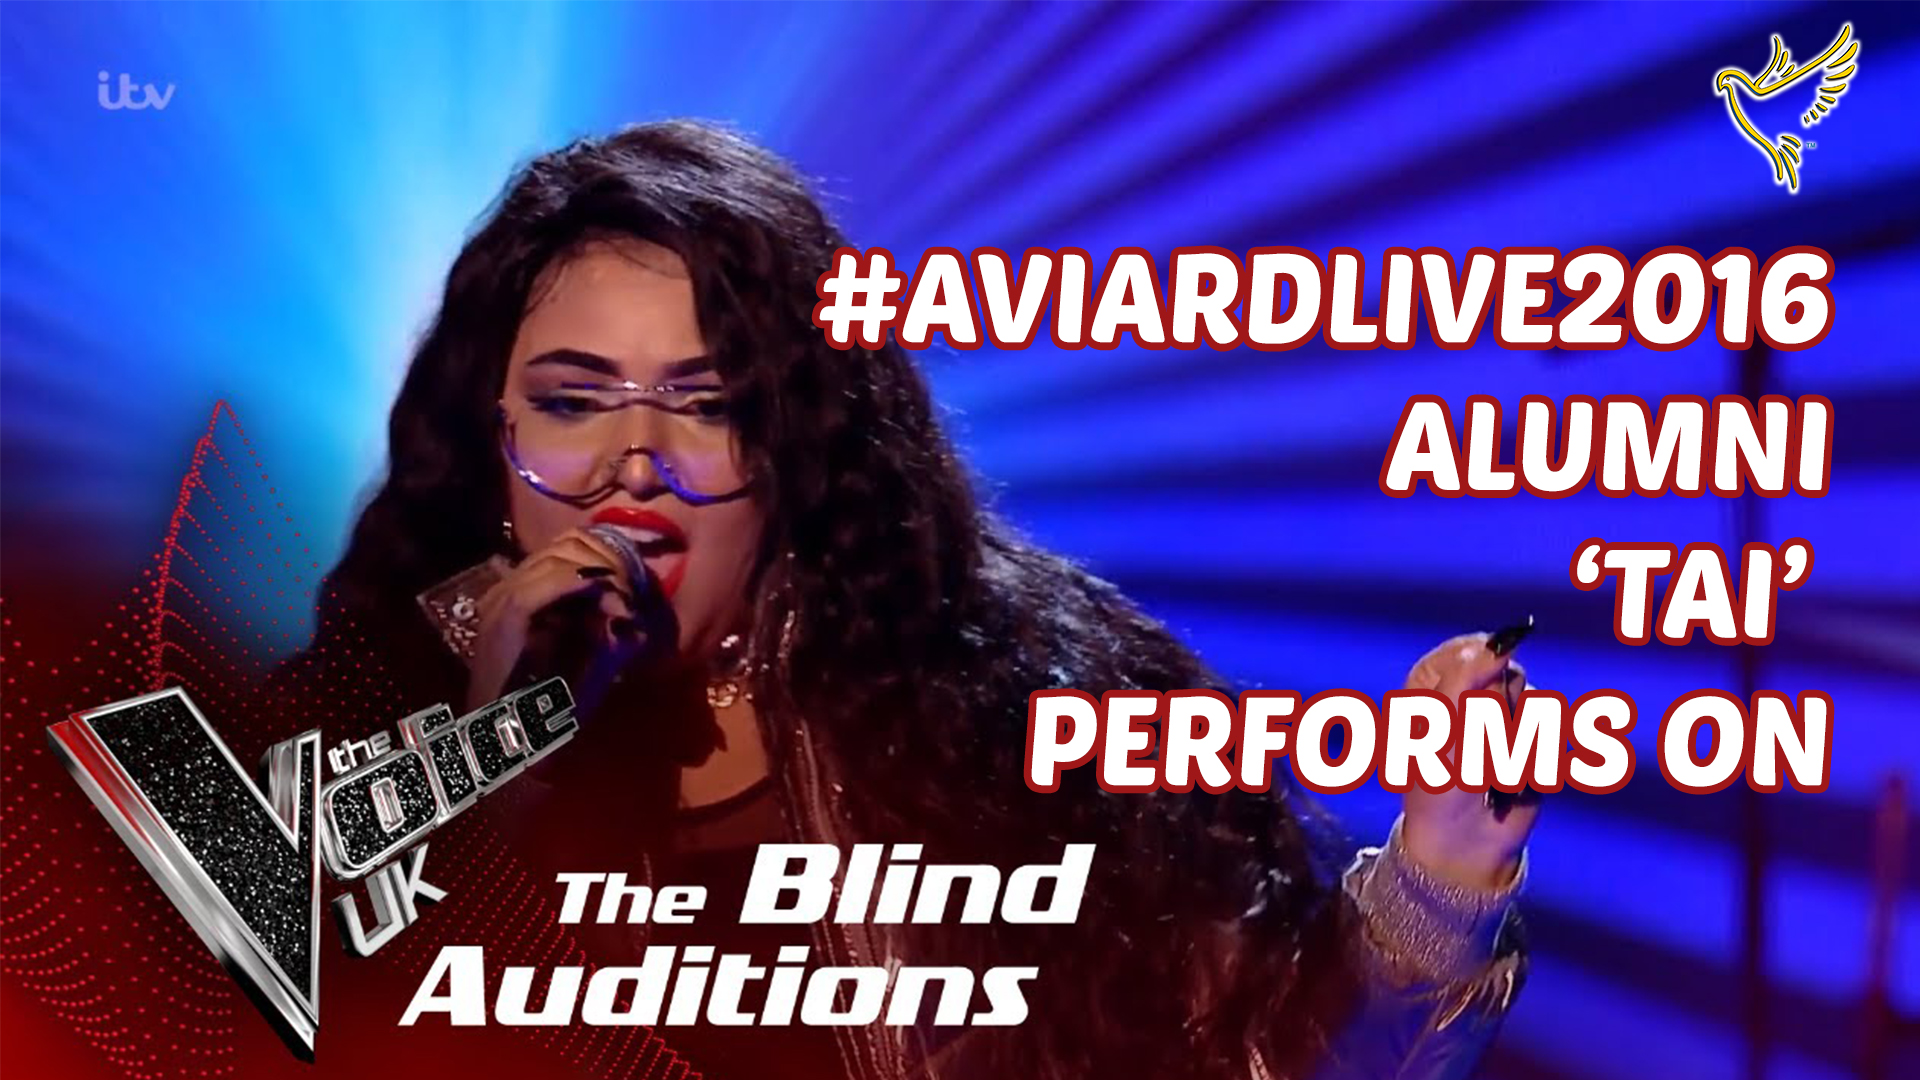 'TAI' From #AVIARDLIVE2016 Performs On THE VOICE 2018!